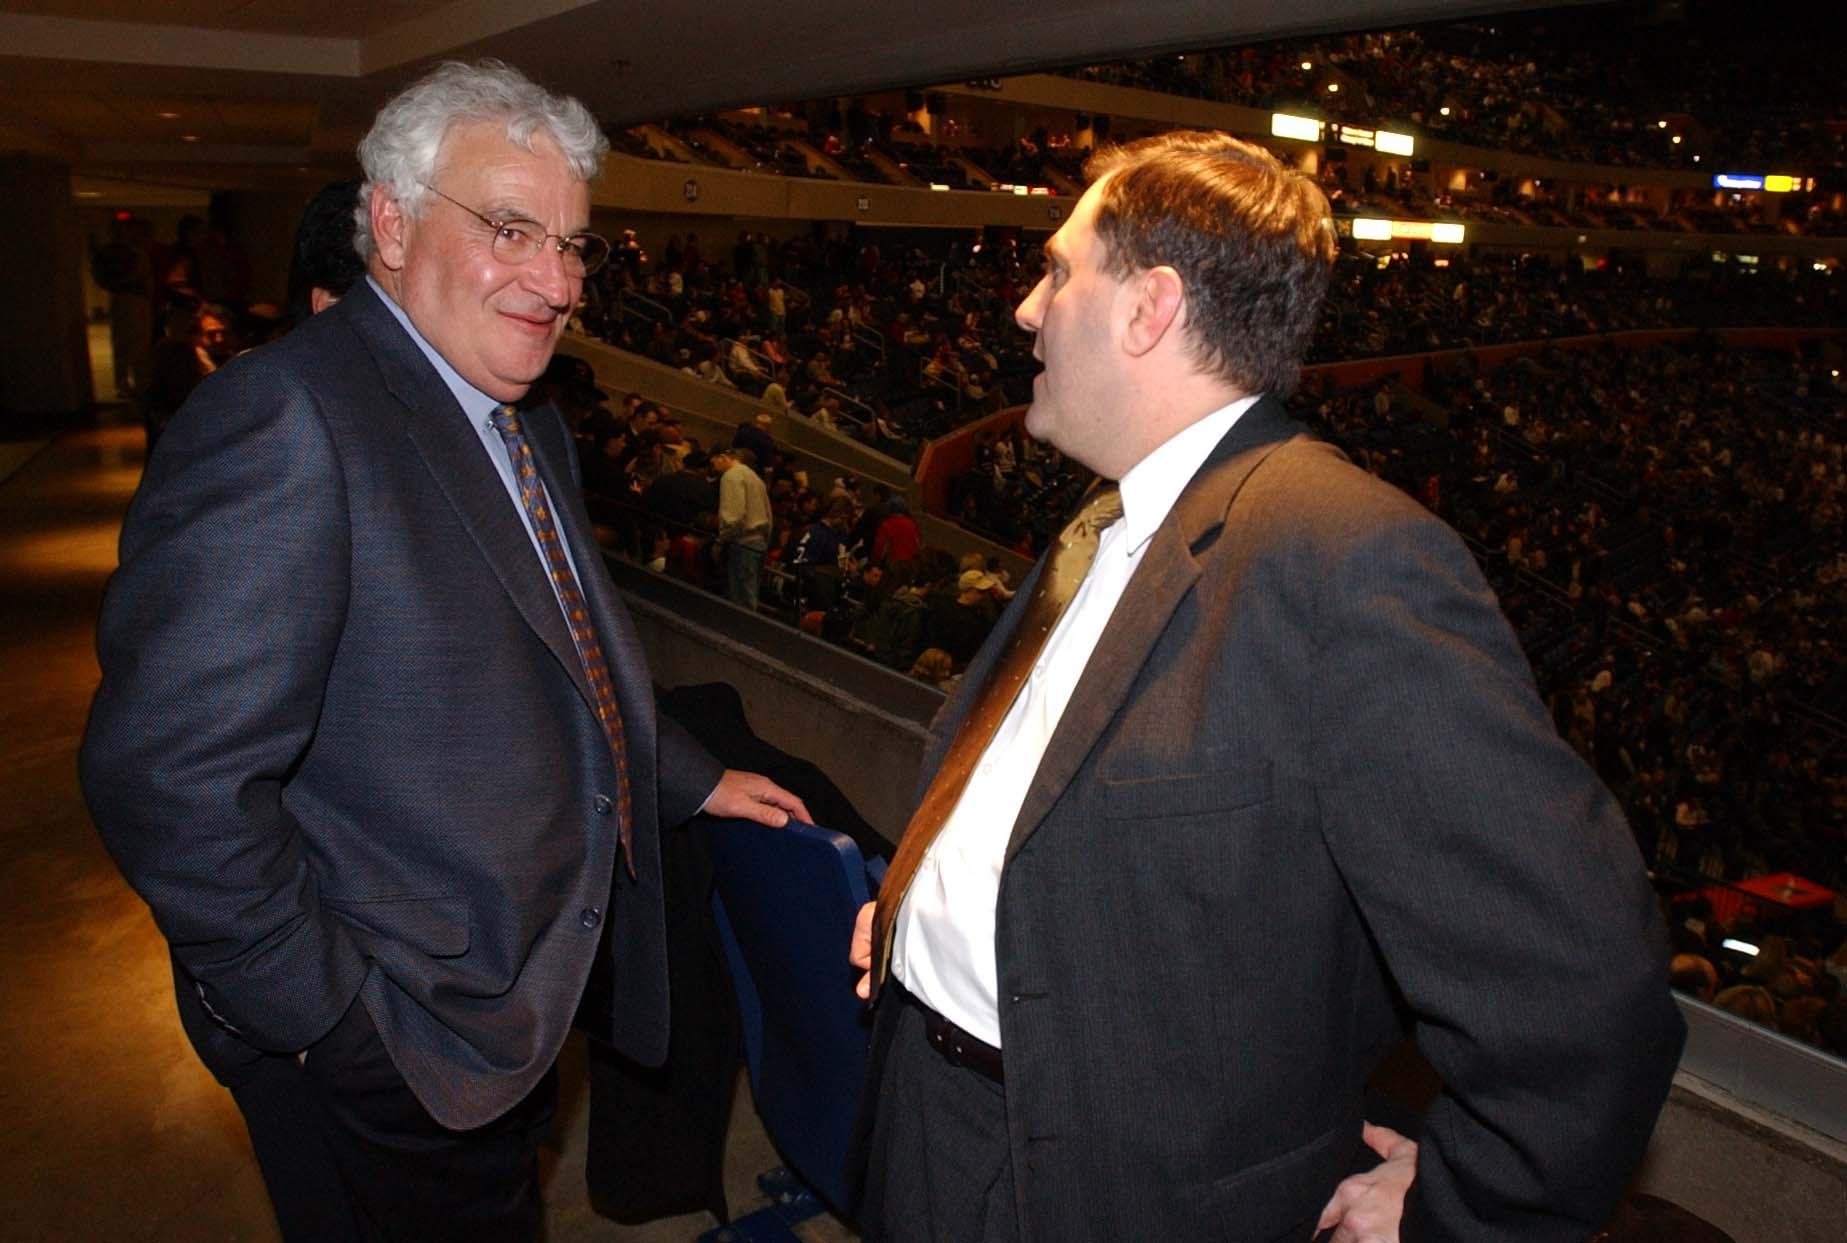 LOCAL GOLISANO --- Tom Golisano , left, talks with Steve Pigeon at the HSBC Arena in between periods where the Buffalo Sabres were playing the Toronto Maple Leafs on 1/24/03 in Buffalo, N.Y. Photo by John Hickey